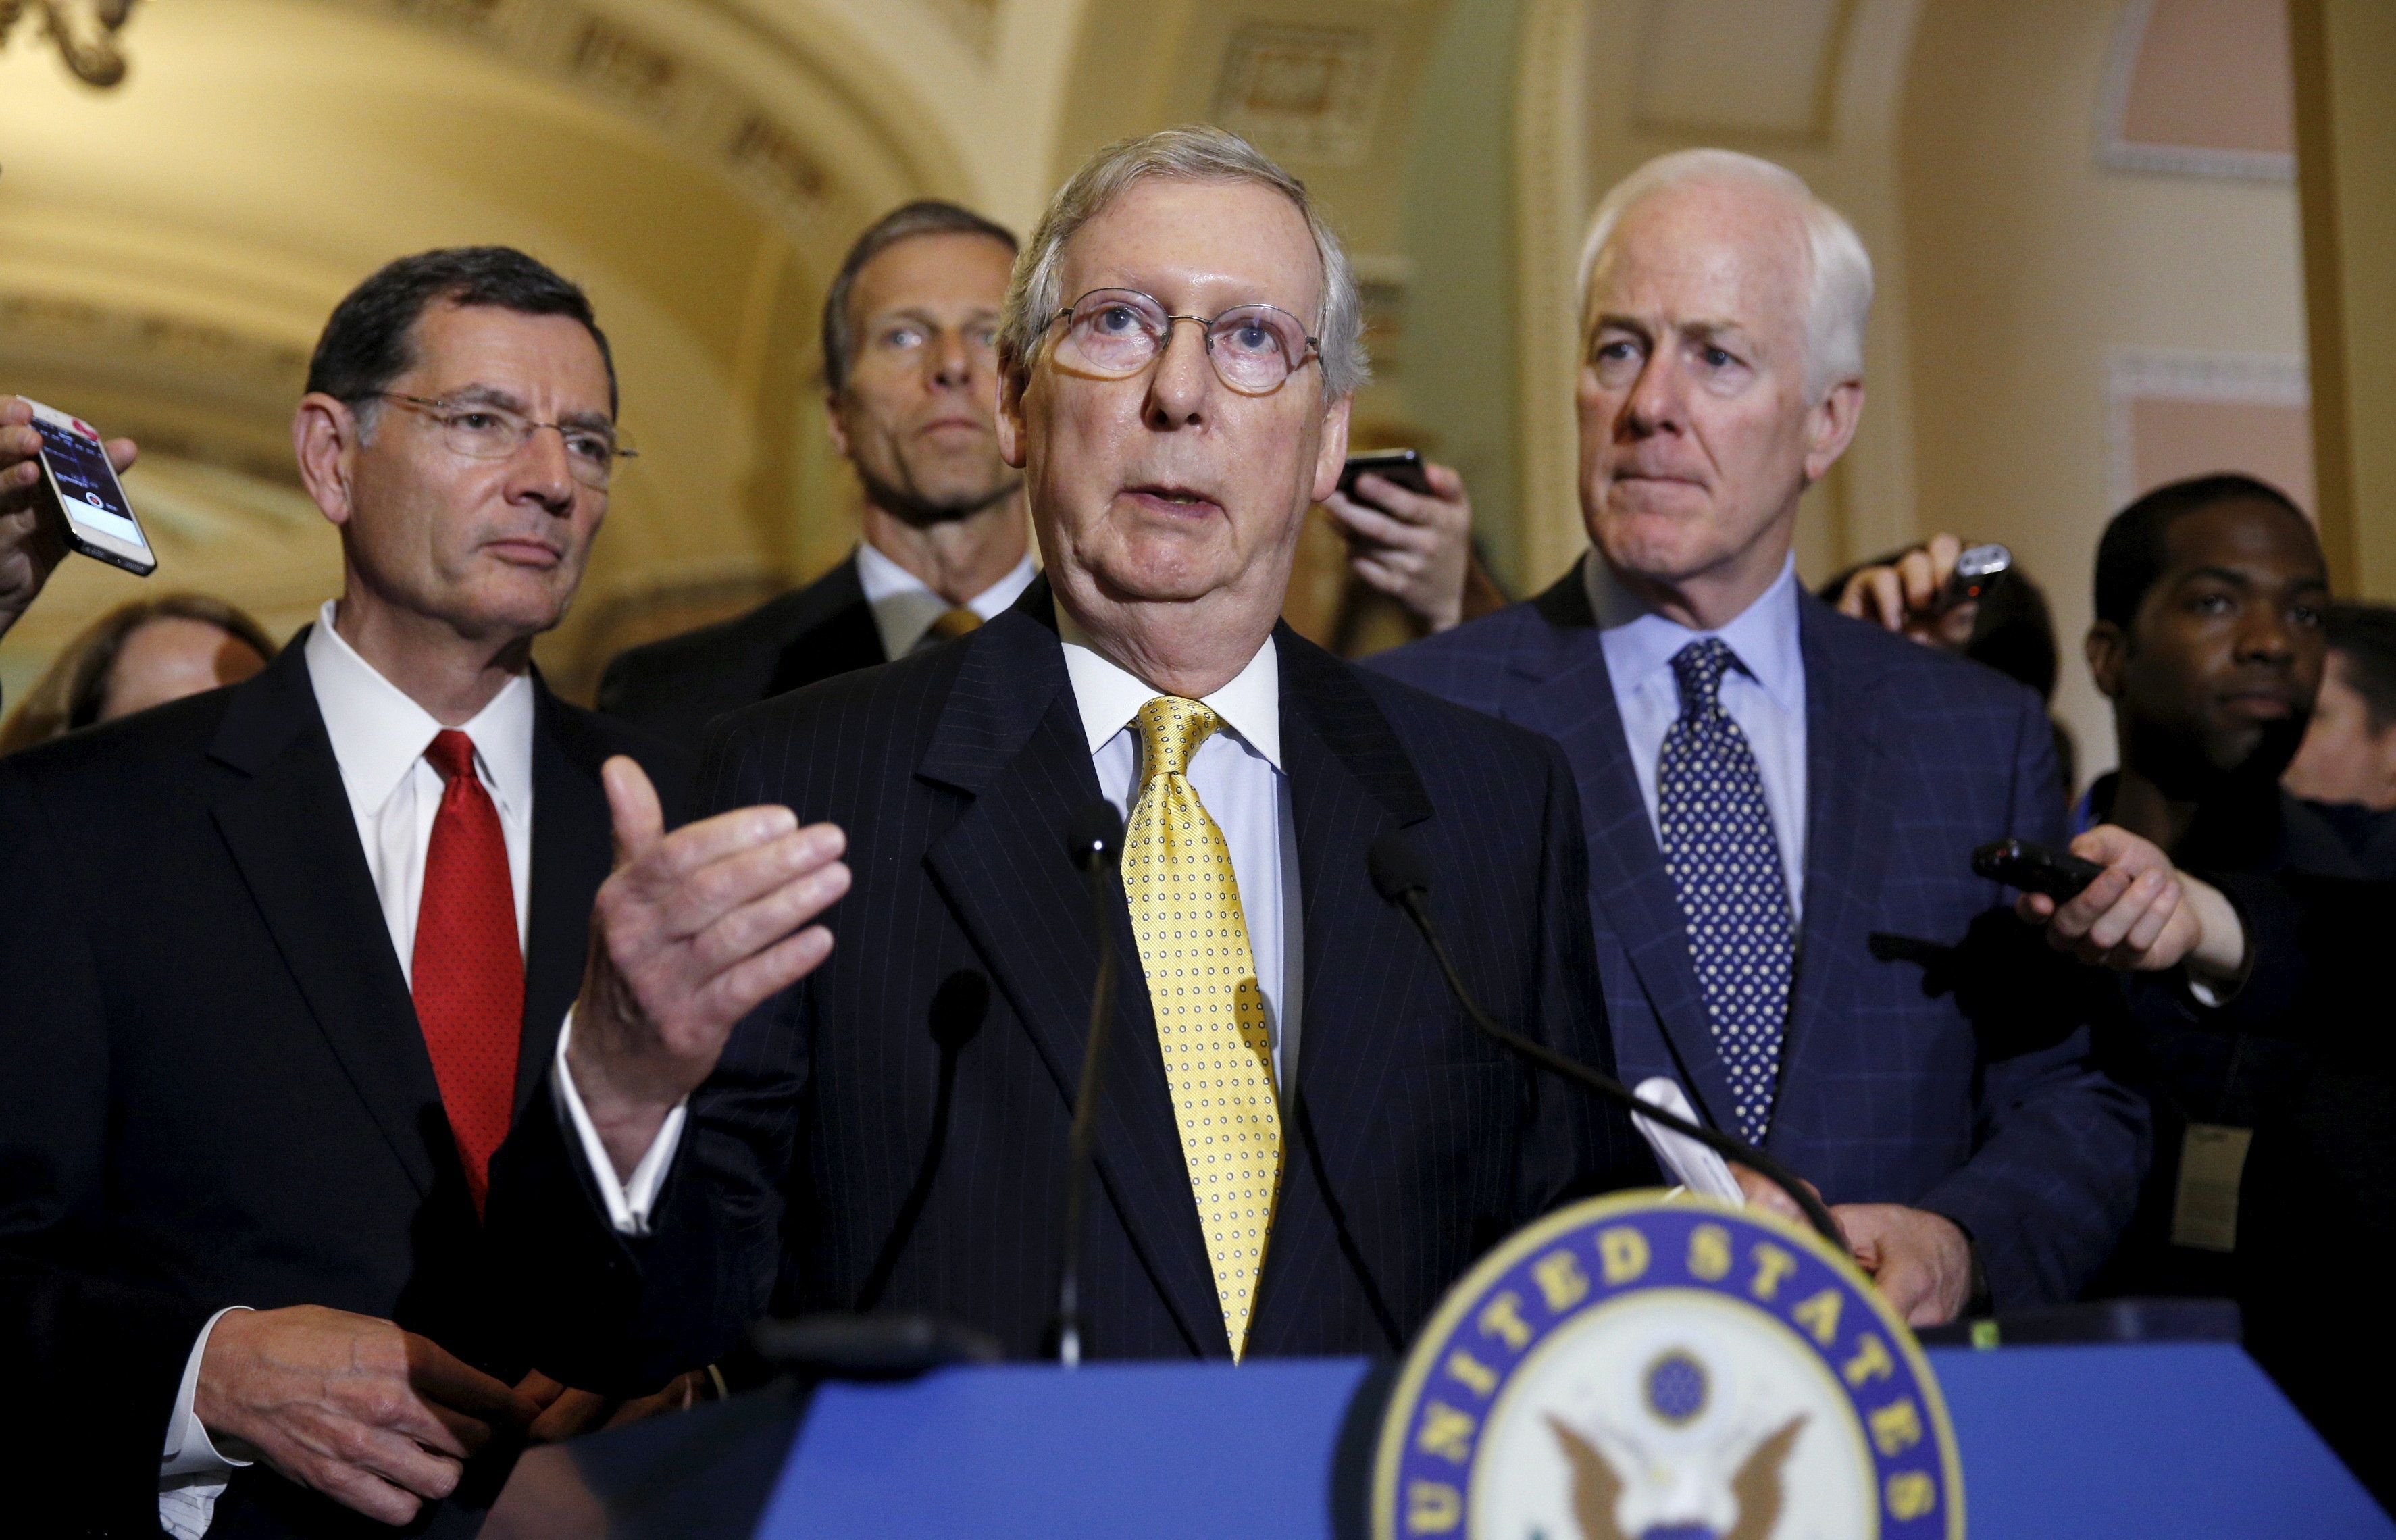 Senate Majority Leader Mitch McConnell speaks to reporters following the weekly policy lunch at the U.S. Capitol in Washington May 5, 2015. Flanking McConnnell are Senators' John Barrasso  (R-WY) (L) and John Cornyn (R-TX). REUTERS/Kevin Lamarque